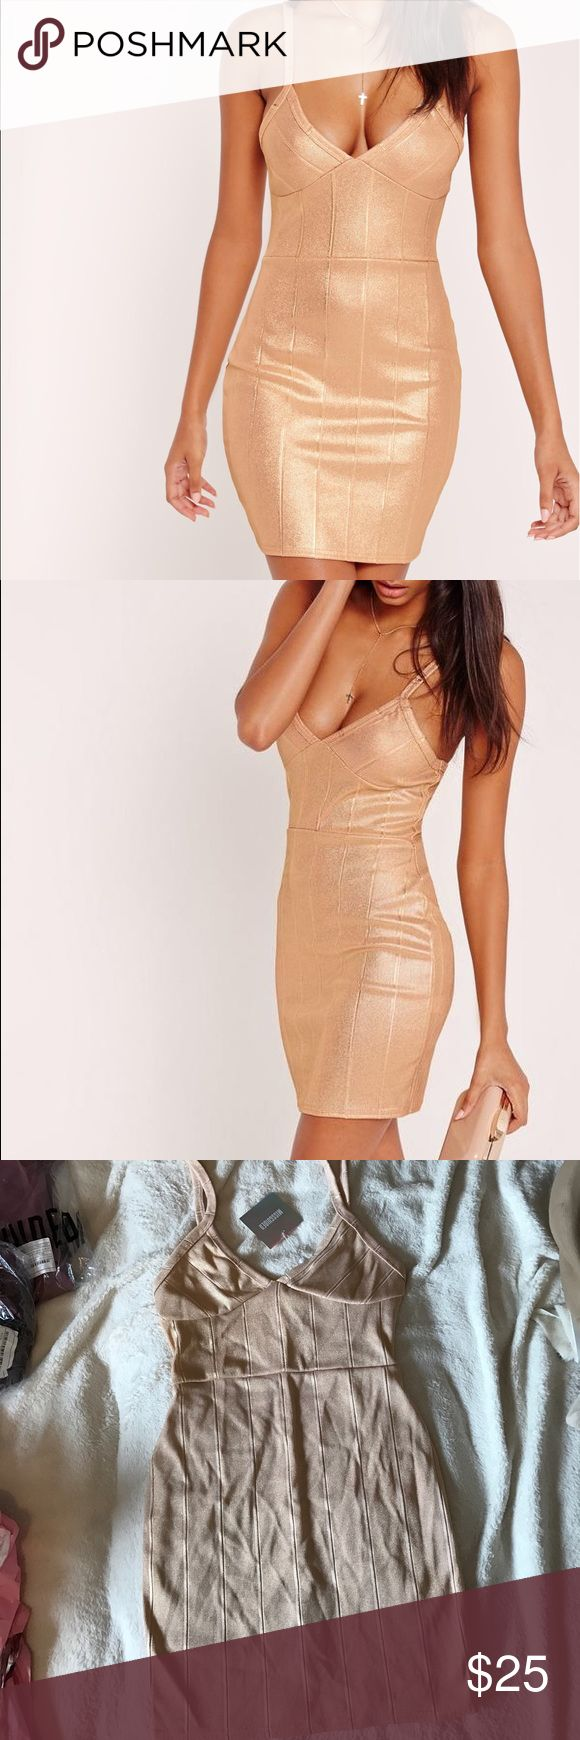 Metallic gold mini dress Amazing metallic gold mini dress! Fits so great to you body! Great for casual day or going out! Size 4 very stretchy! New with tags! Missguided Dresses Mini